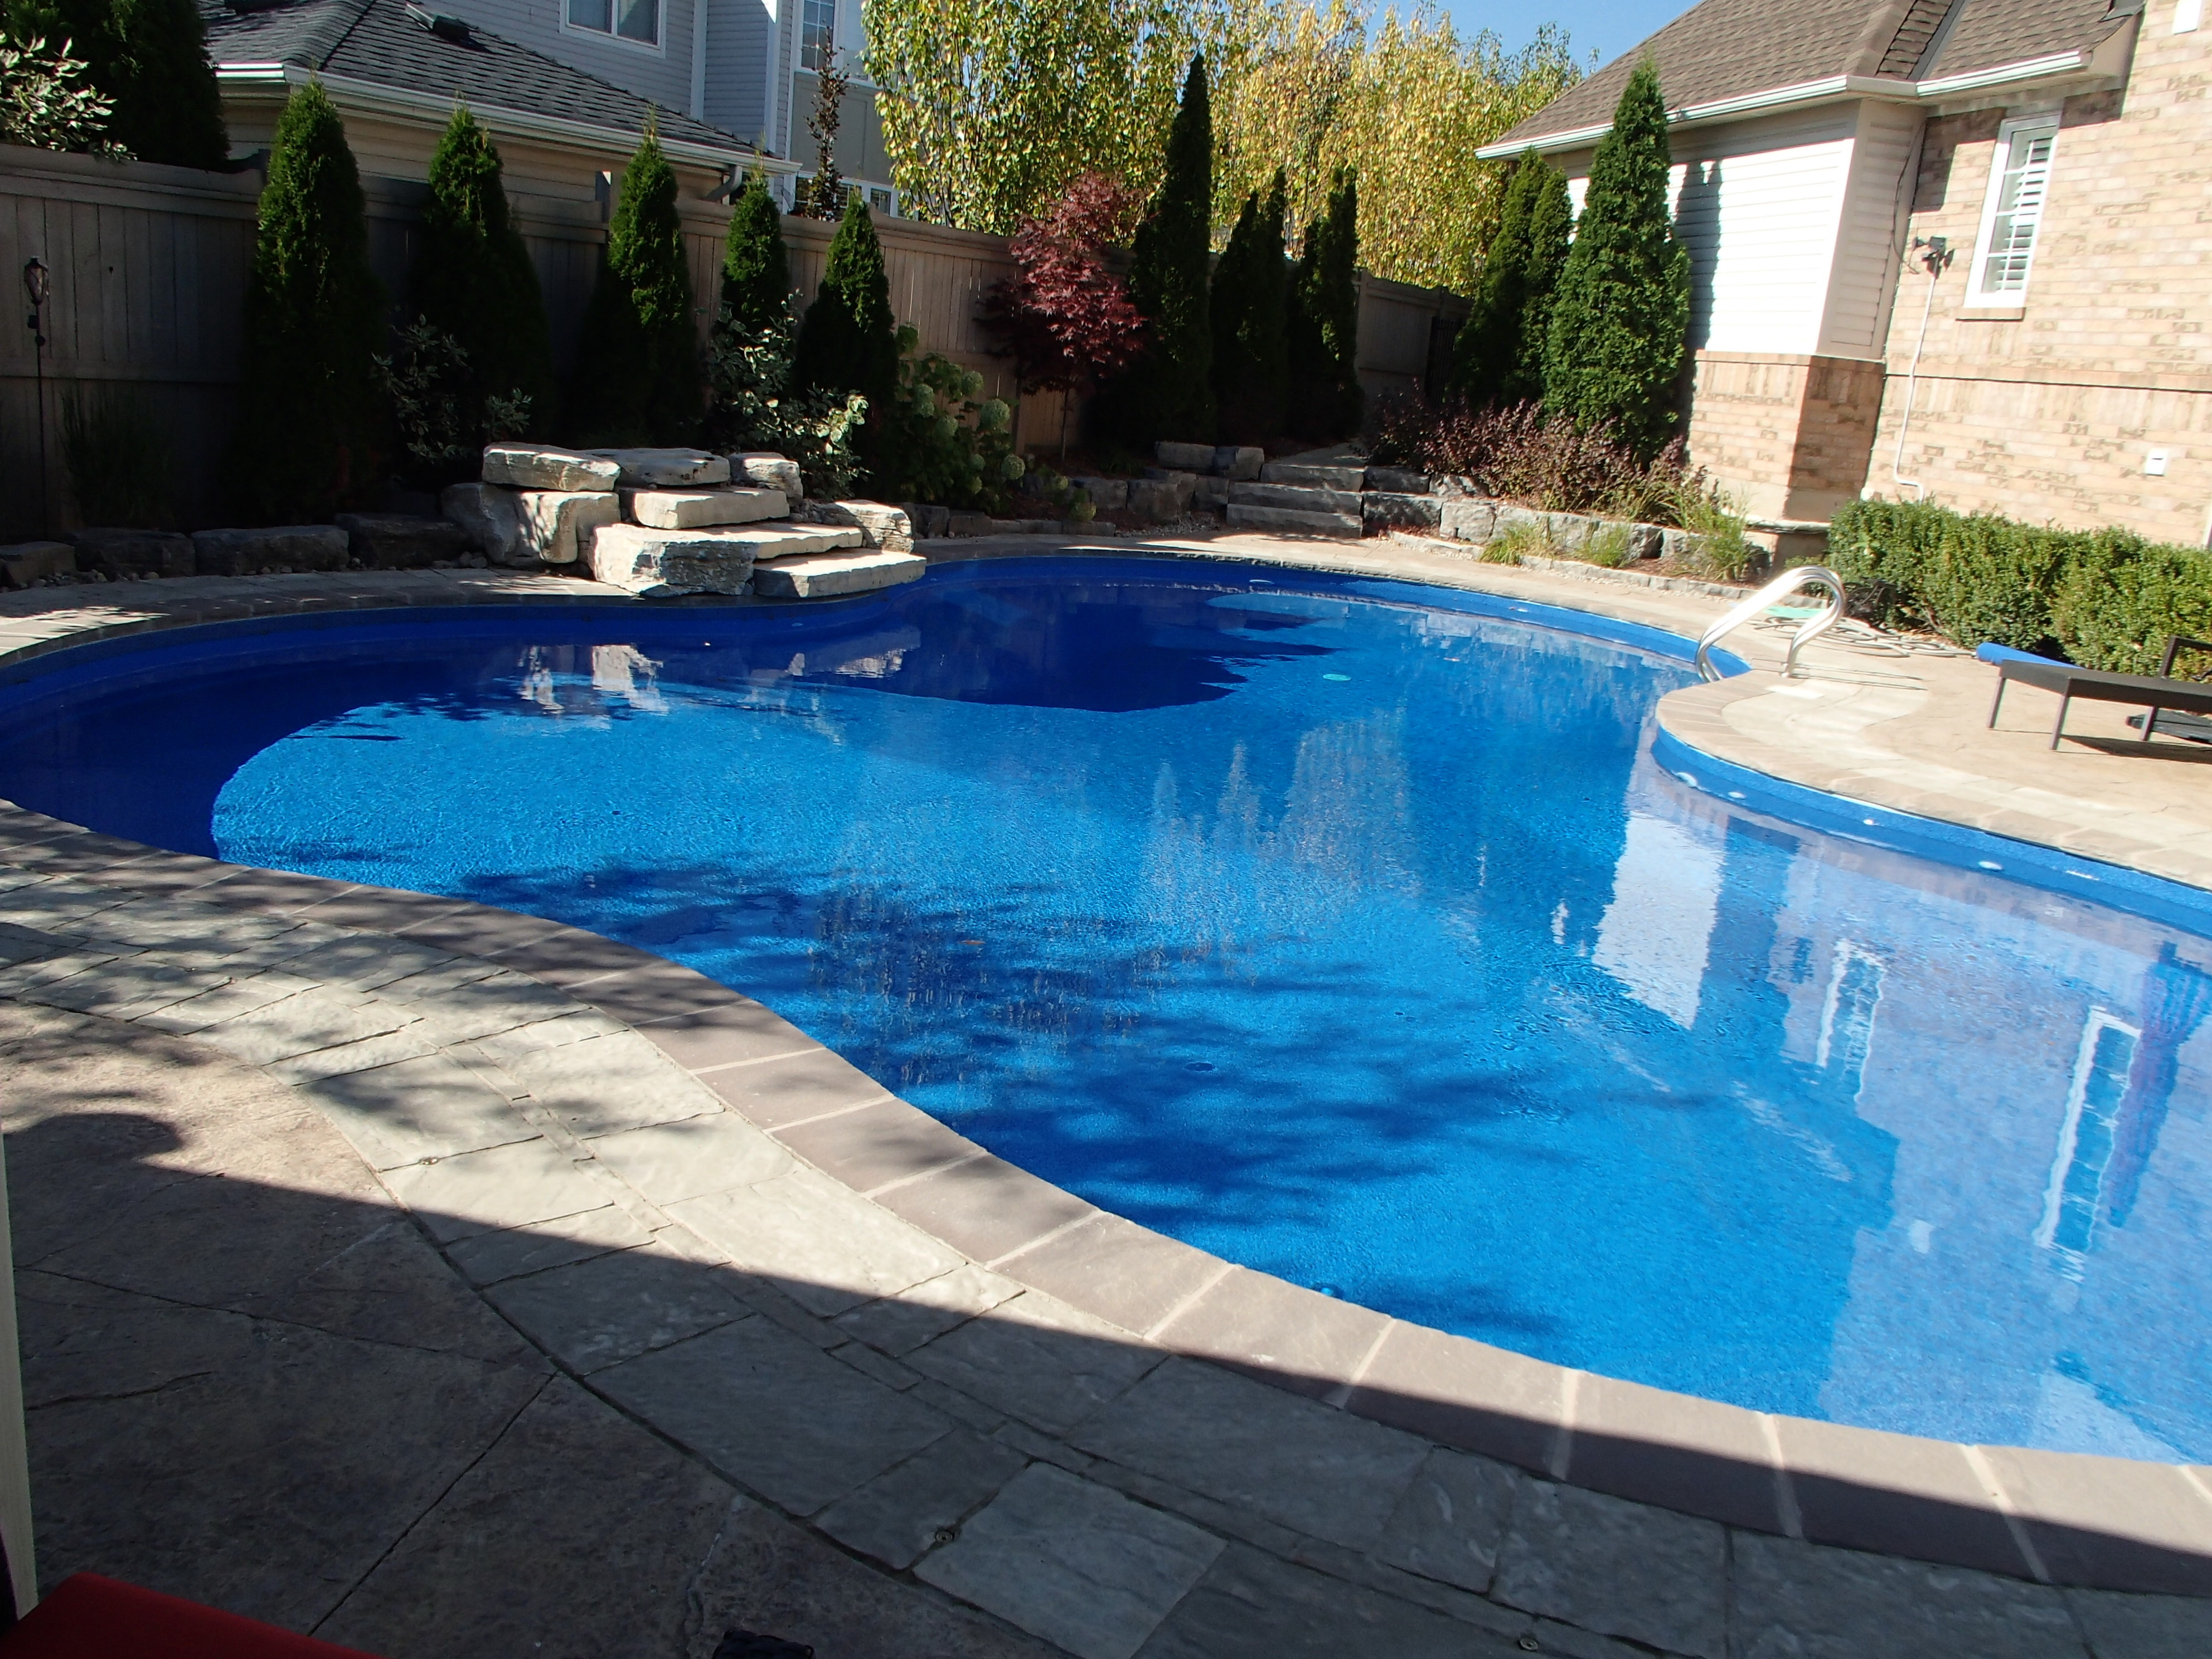 Swimming pool renovation award mirage pool services for Pool renovations